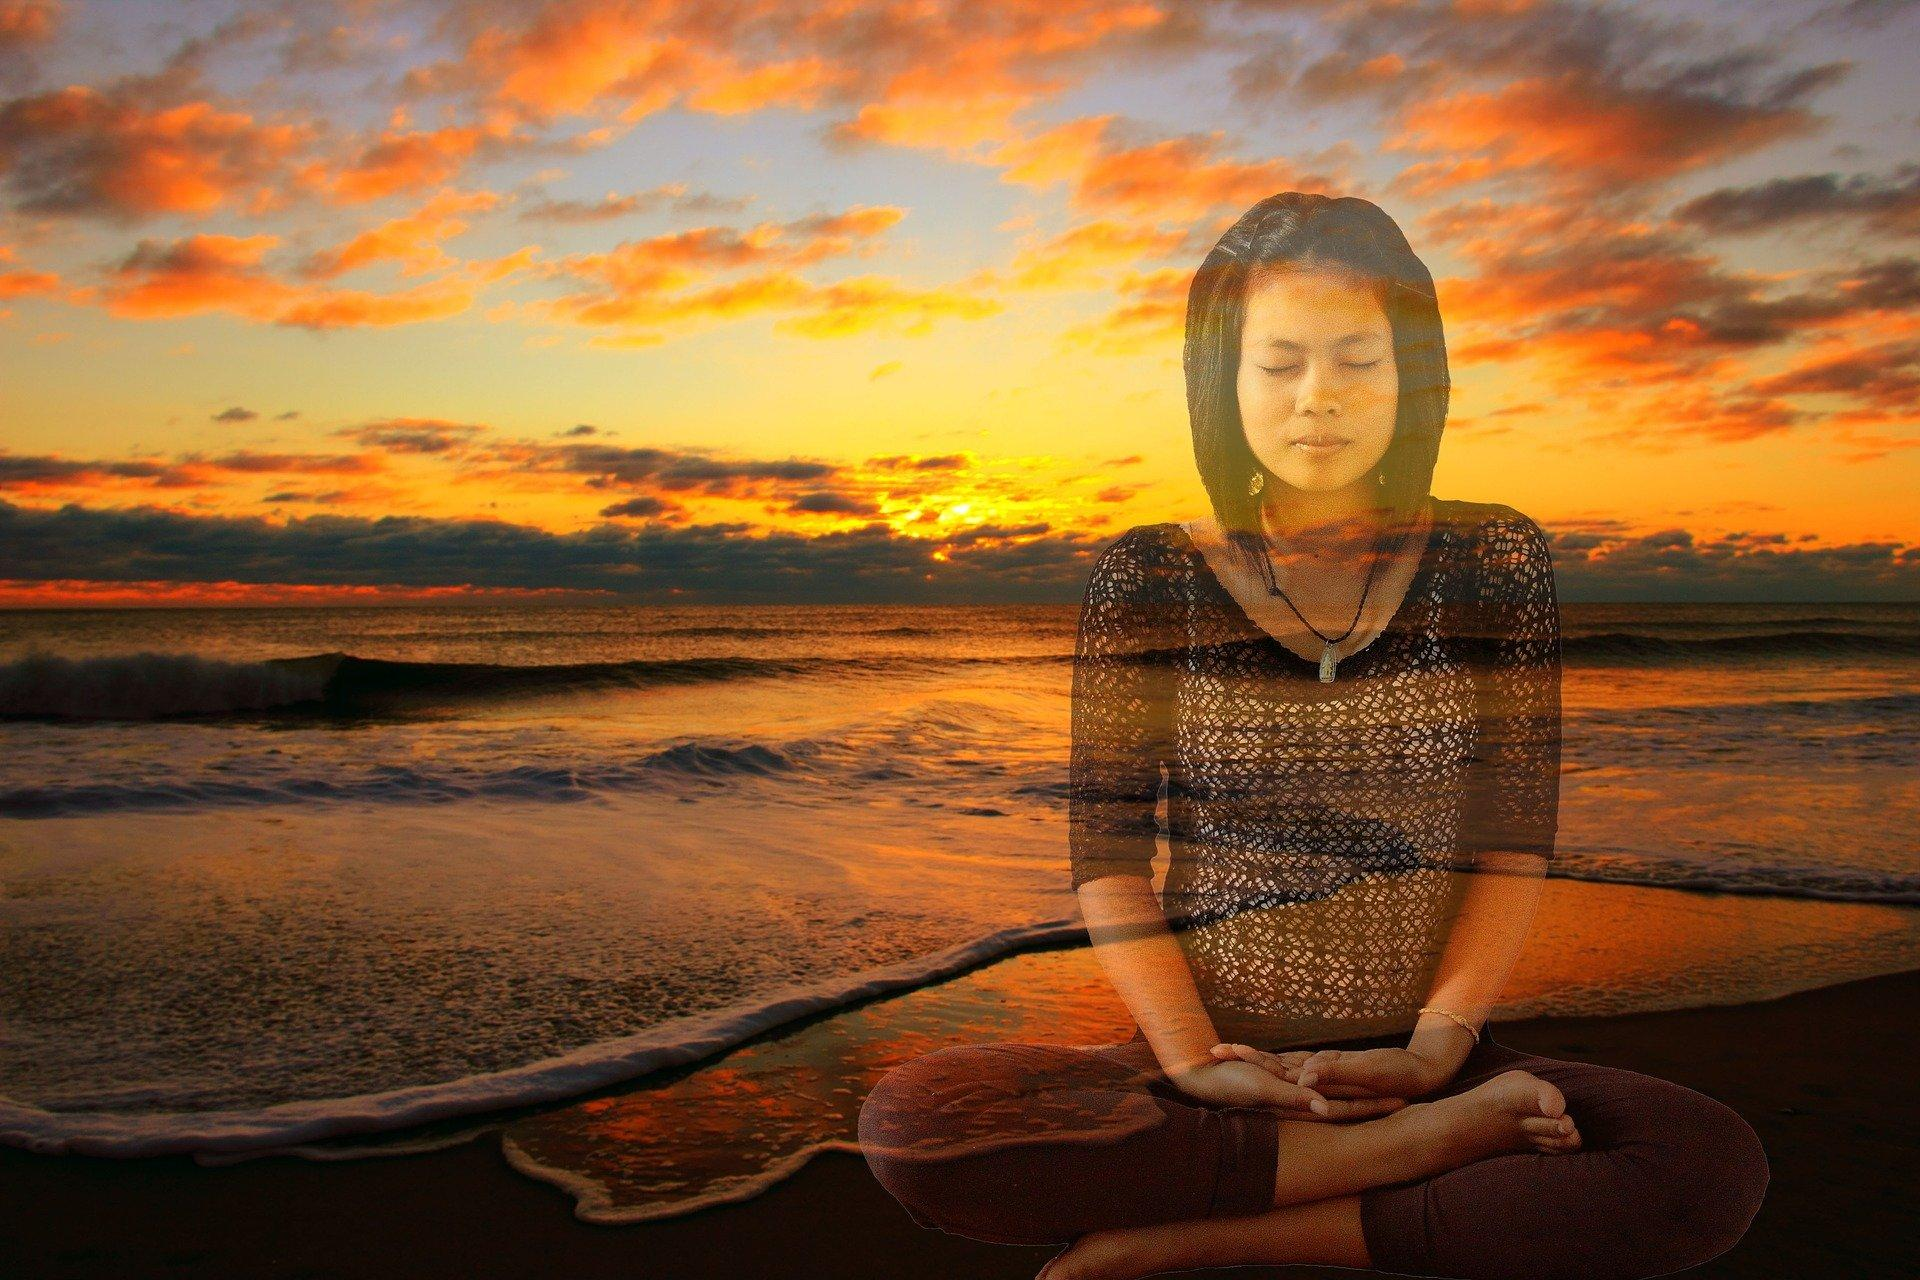 You're Doing It Wrong: Why Some People Have Difficulty Meditating